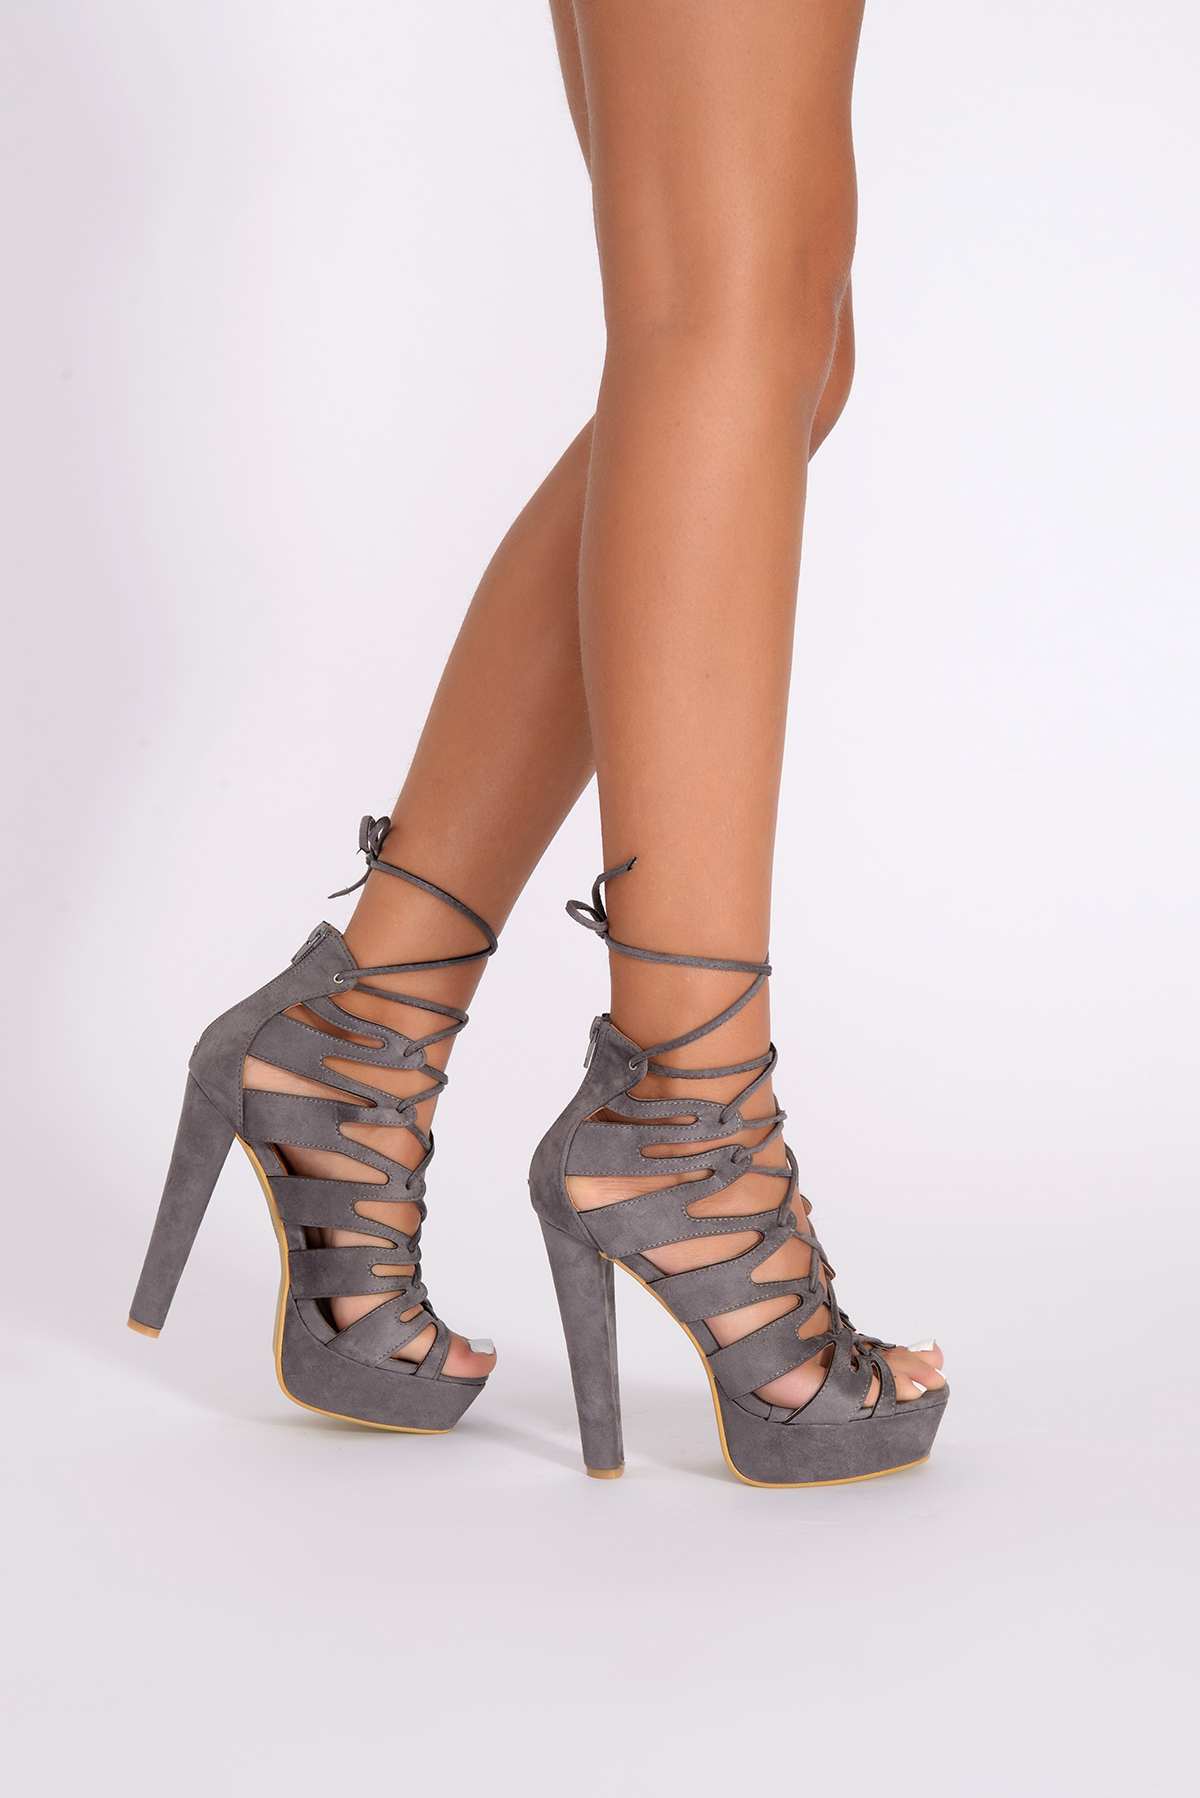 Cut Out Lace Up Heels iqR3aubM